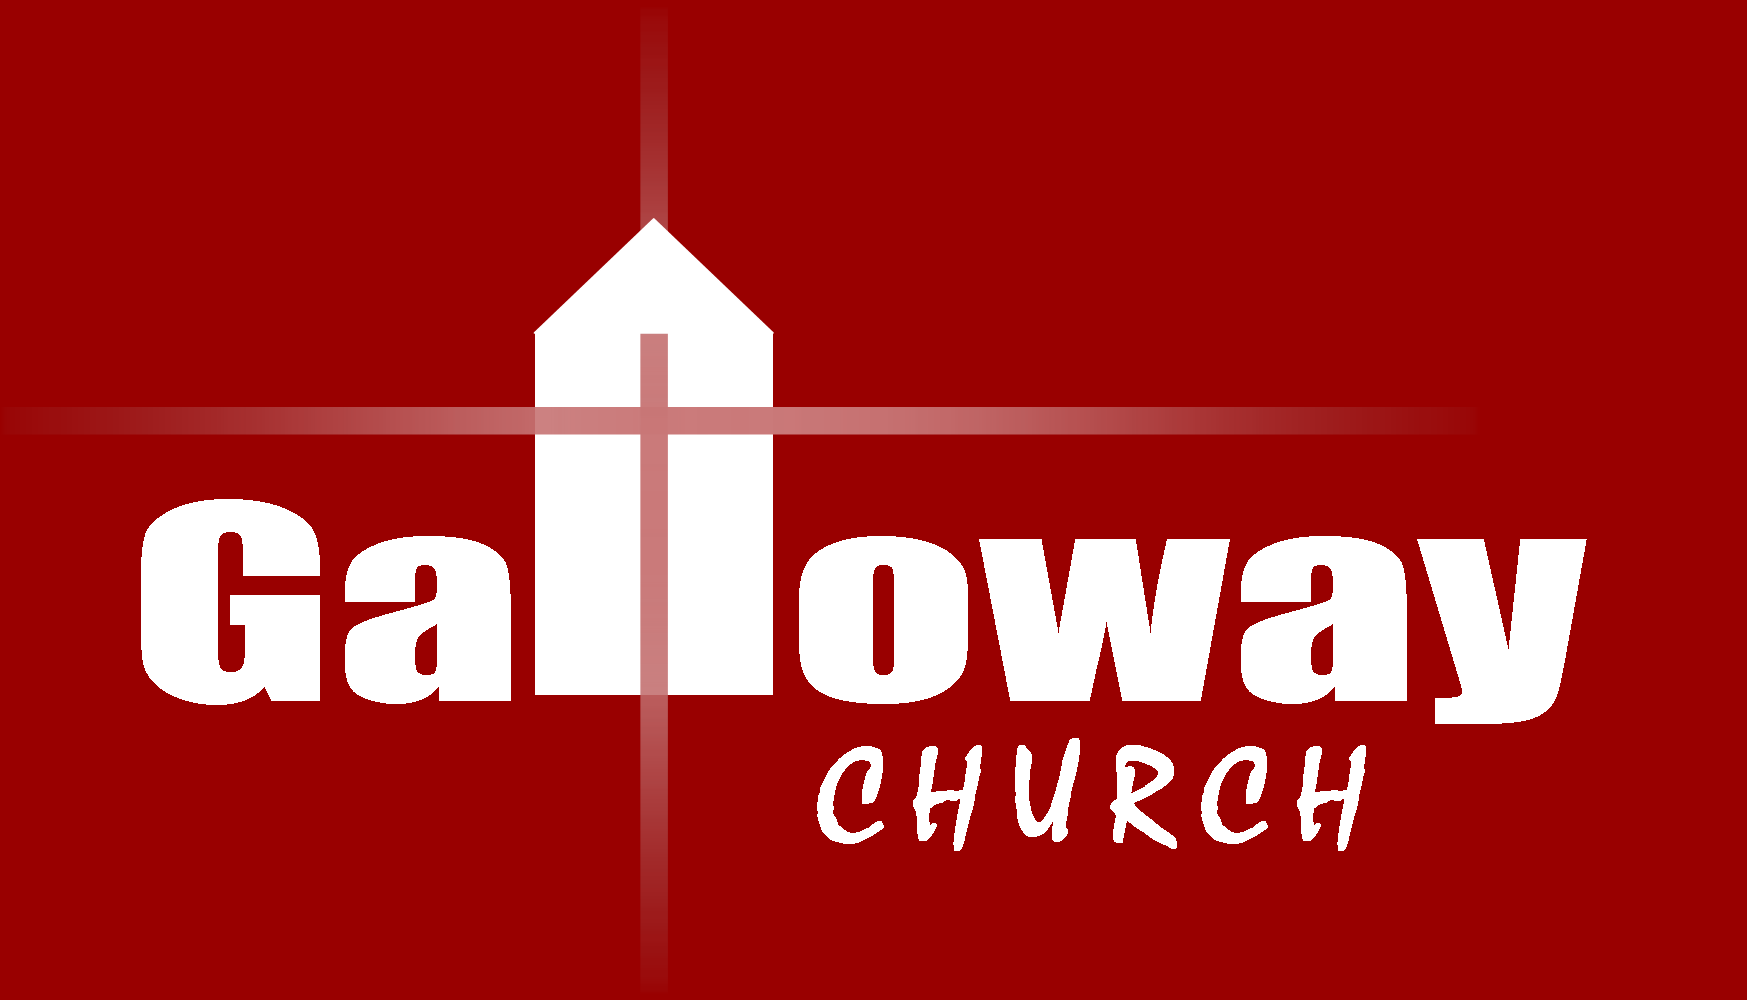 Galloway Church